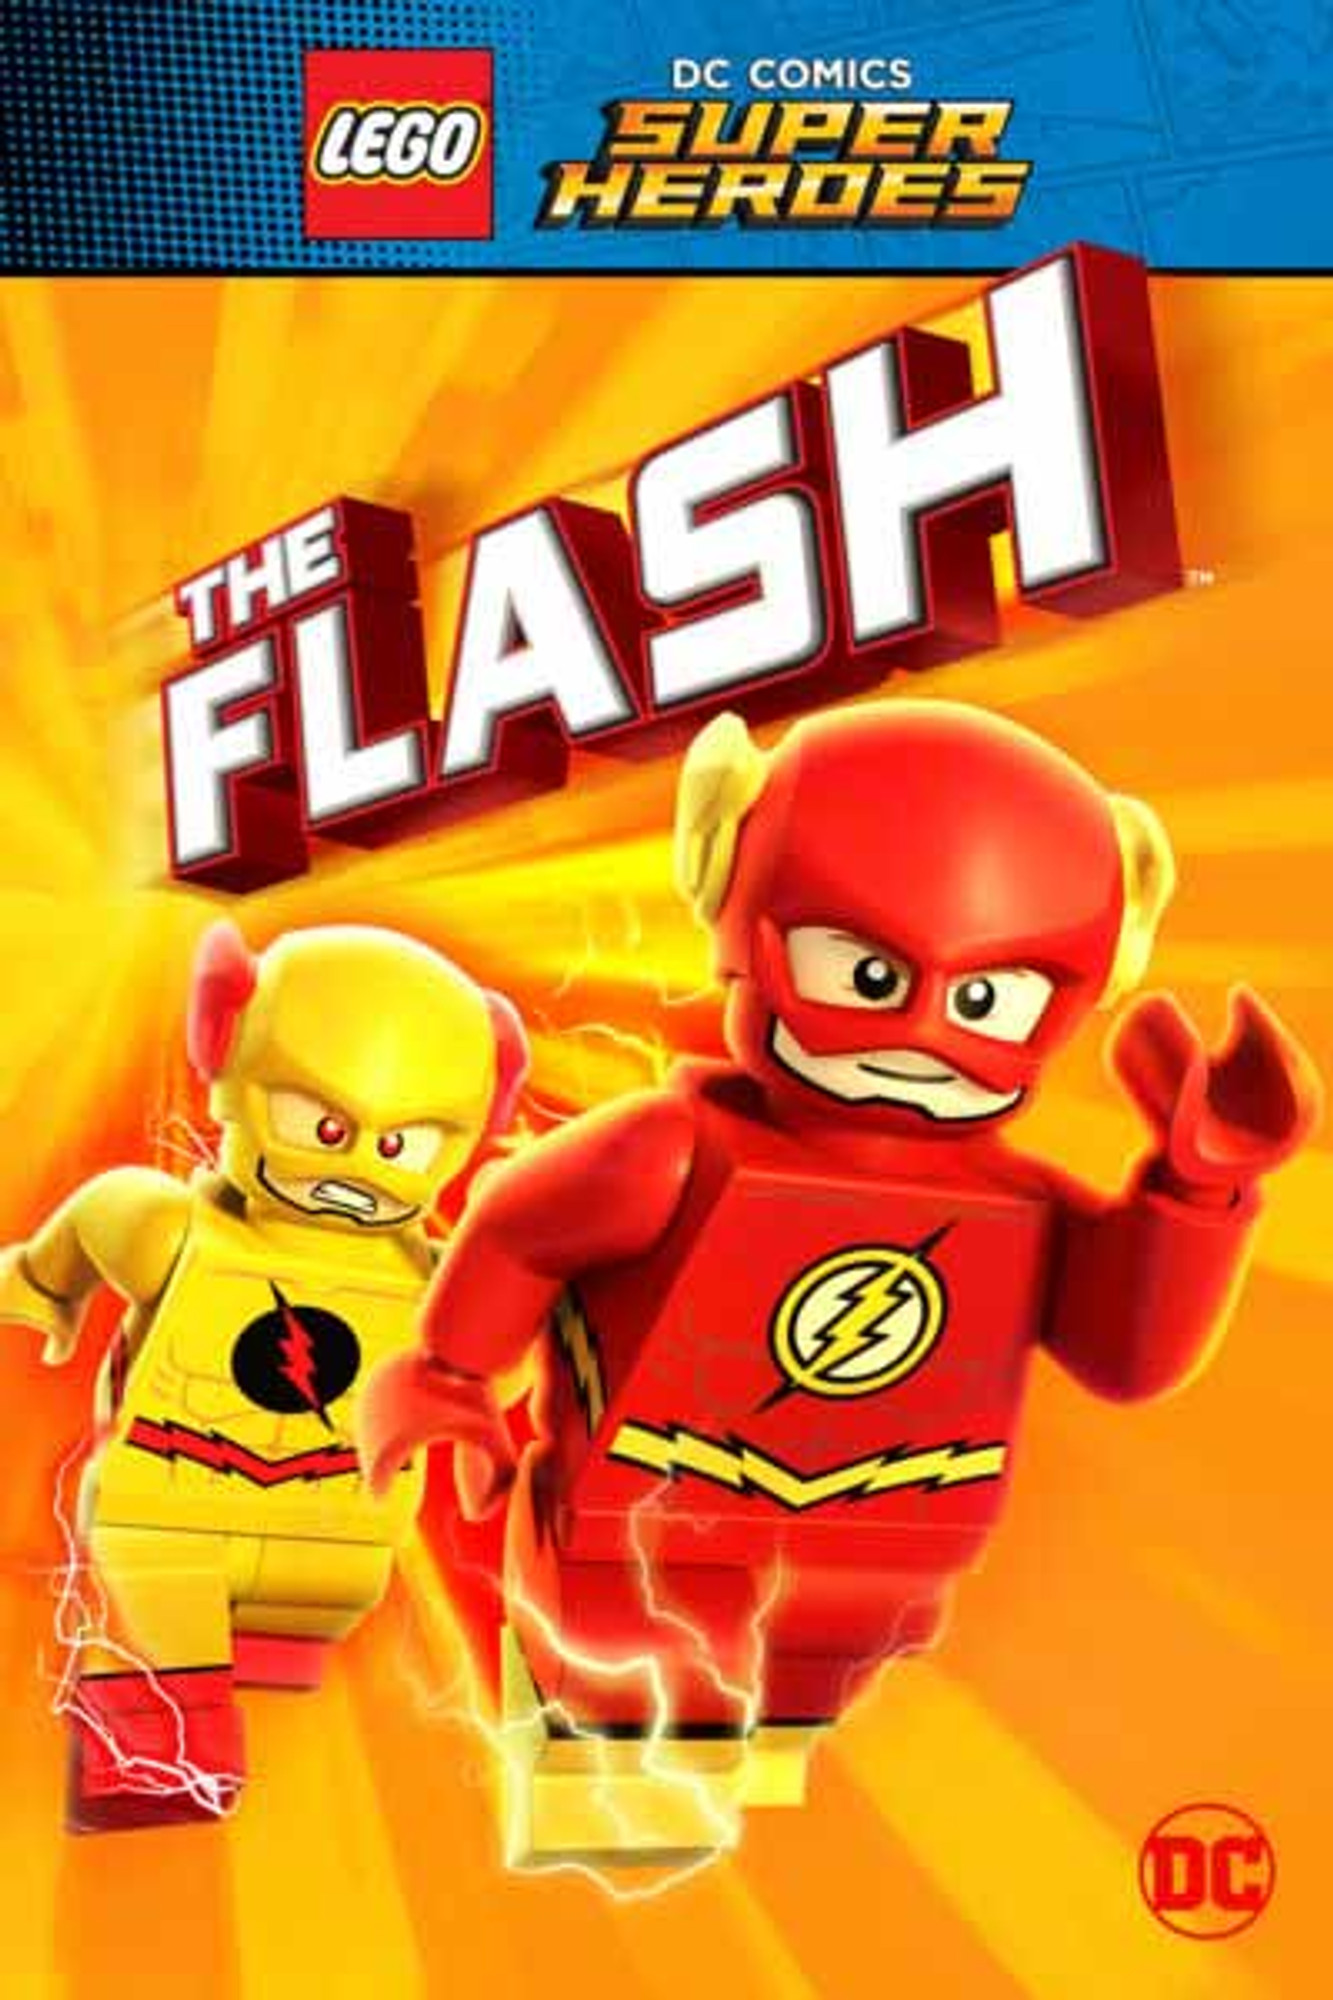 Lego Dc Comics Super Heroes The Flash Movies Anywhere Hd Vudu Hd Or Itunes Hd Via Movies Anywhere Hollywood Movie Codes